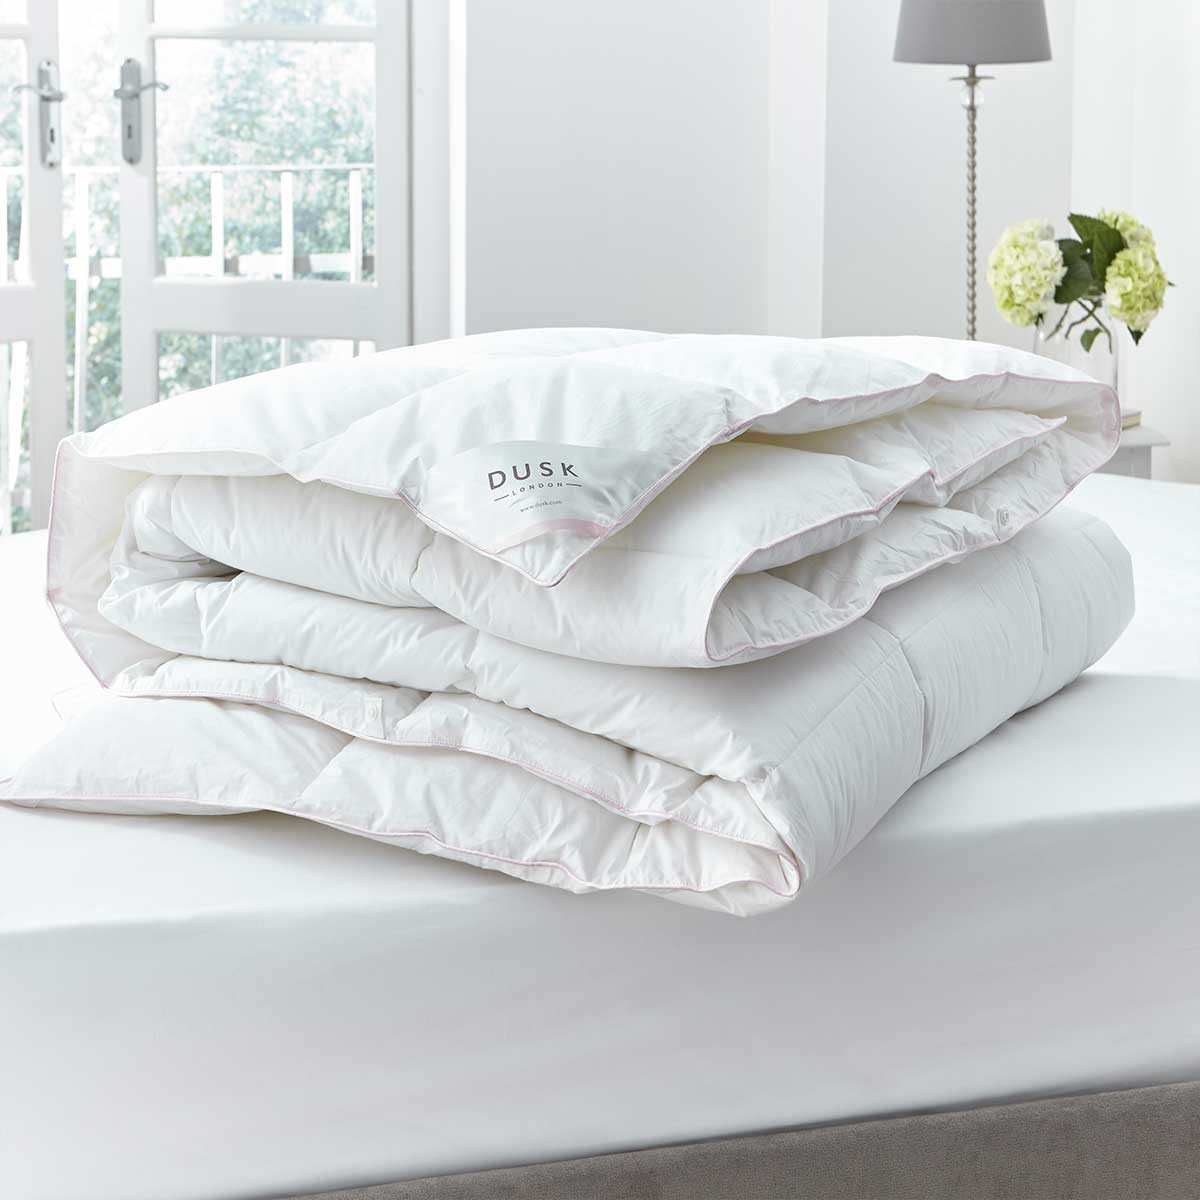 Everything you should know about duvet fillings